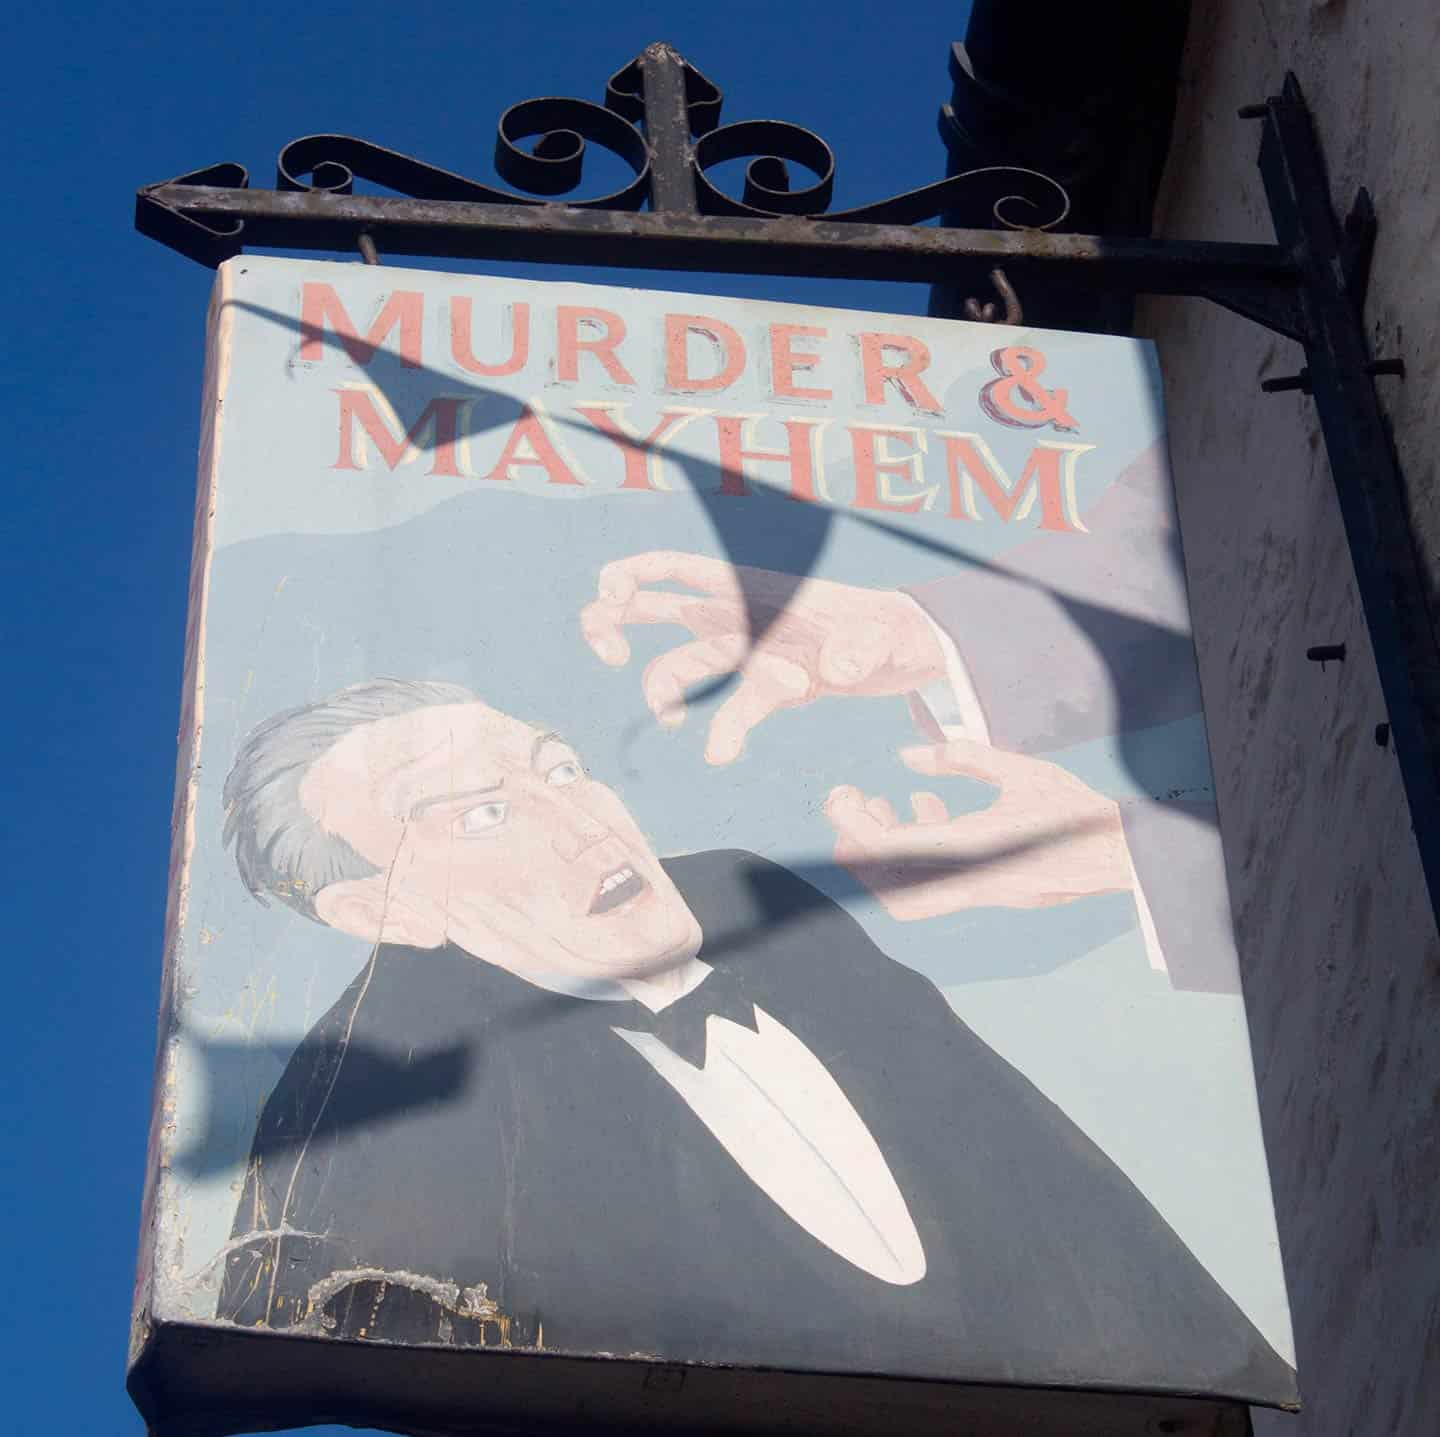 Image of Murder & Mayhem bookshop sign, Hay-on-Wye